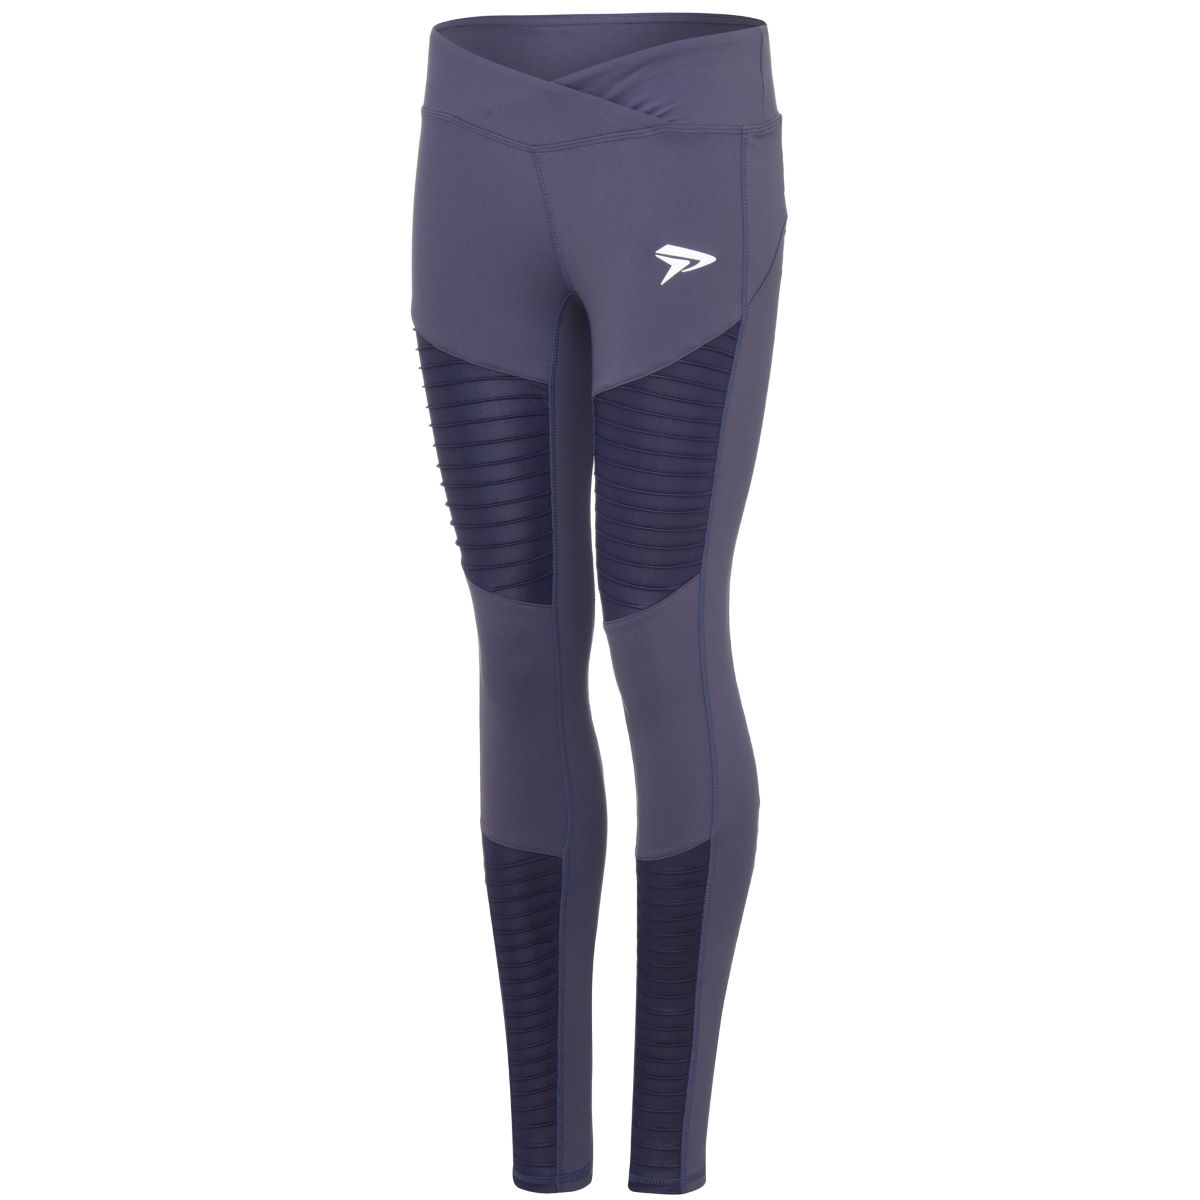 Physiq Apparel Women's NeoLite Moto Tights - Mallas